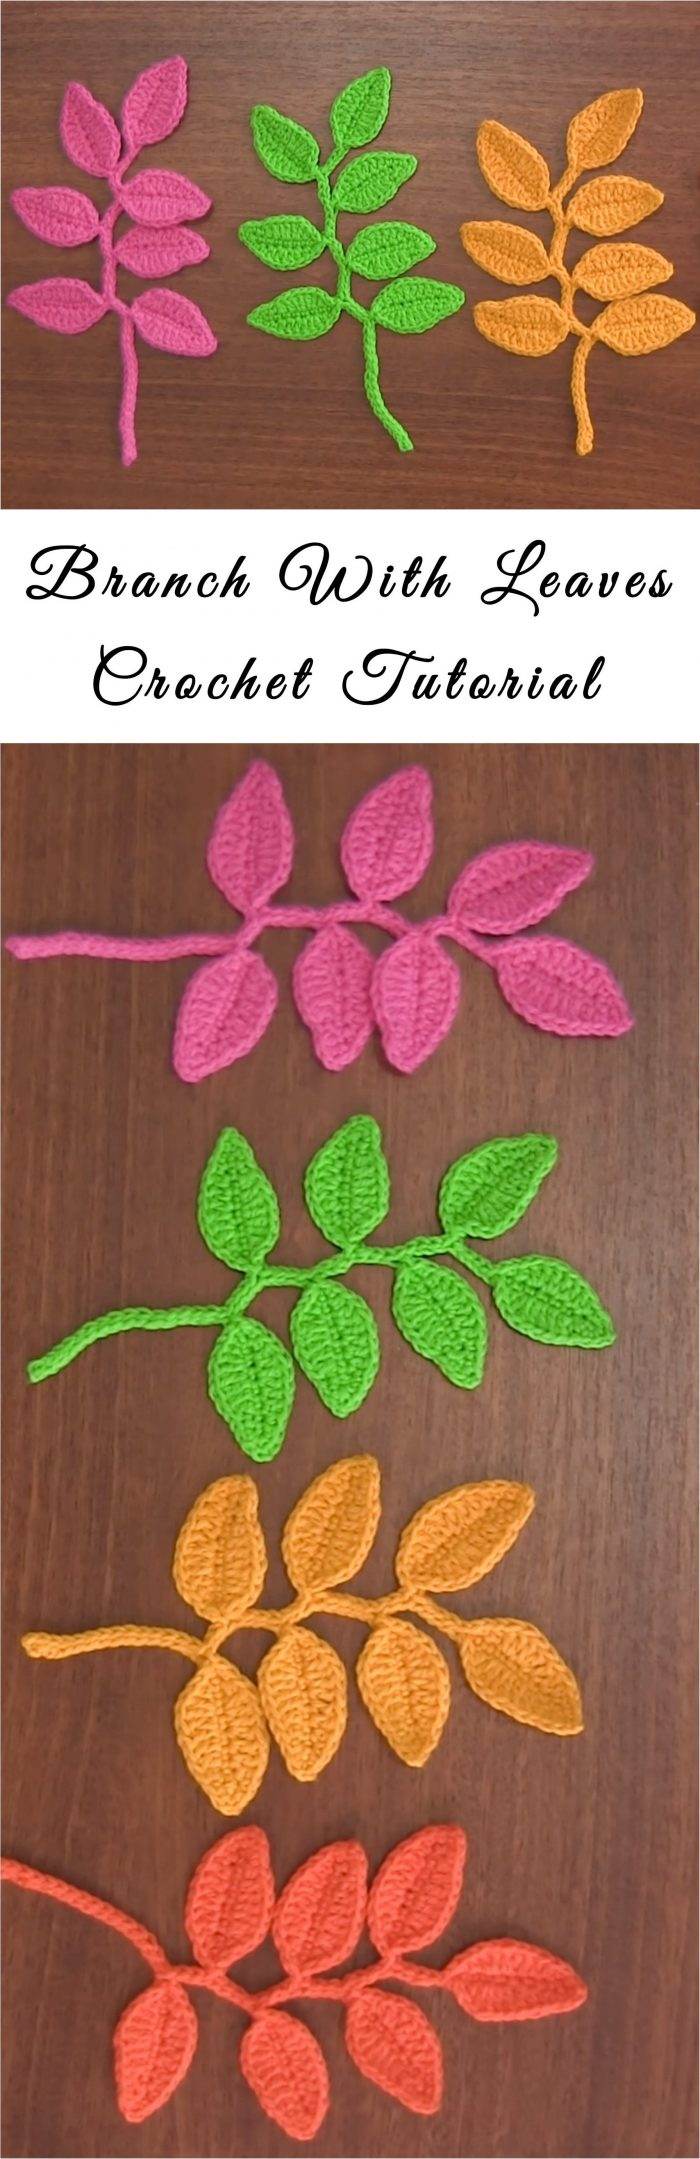 Branch With Leaves Bookmark Crochet Tutorial Yarn Hooks